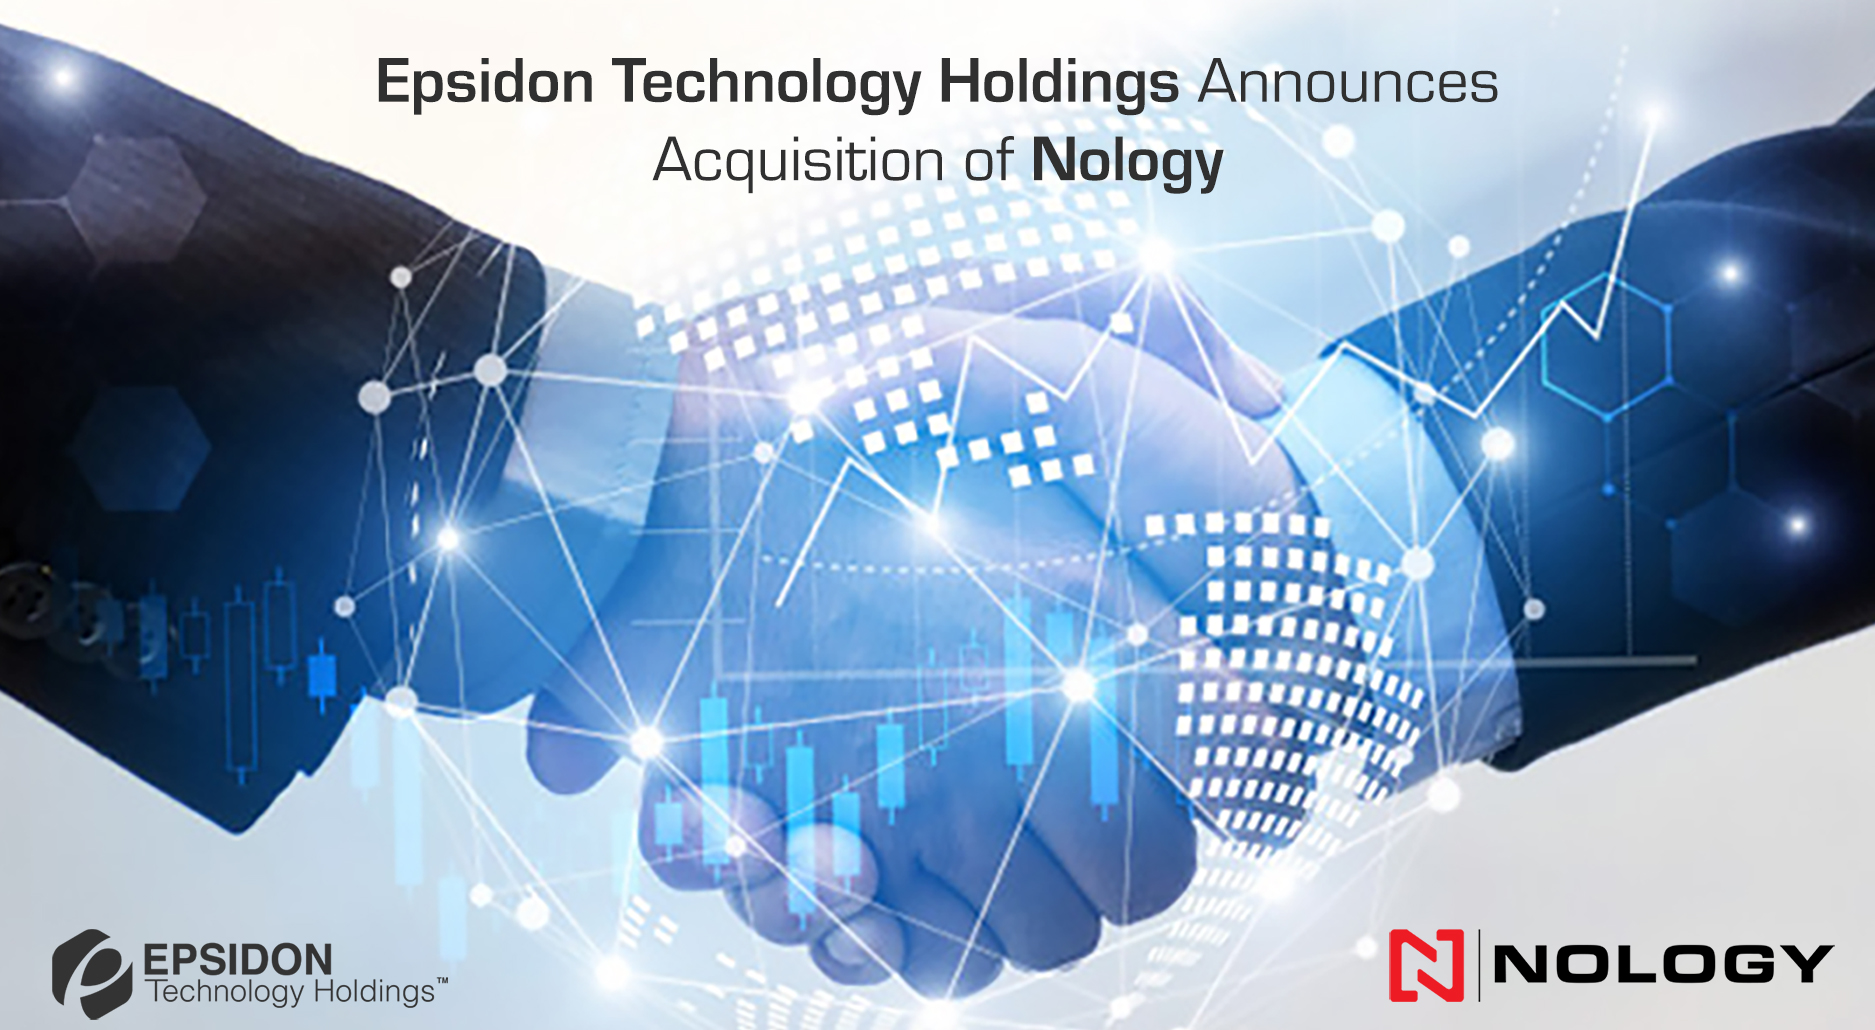 Epsidon Technology Holdings announces acquisition of Nology